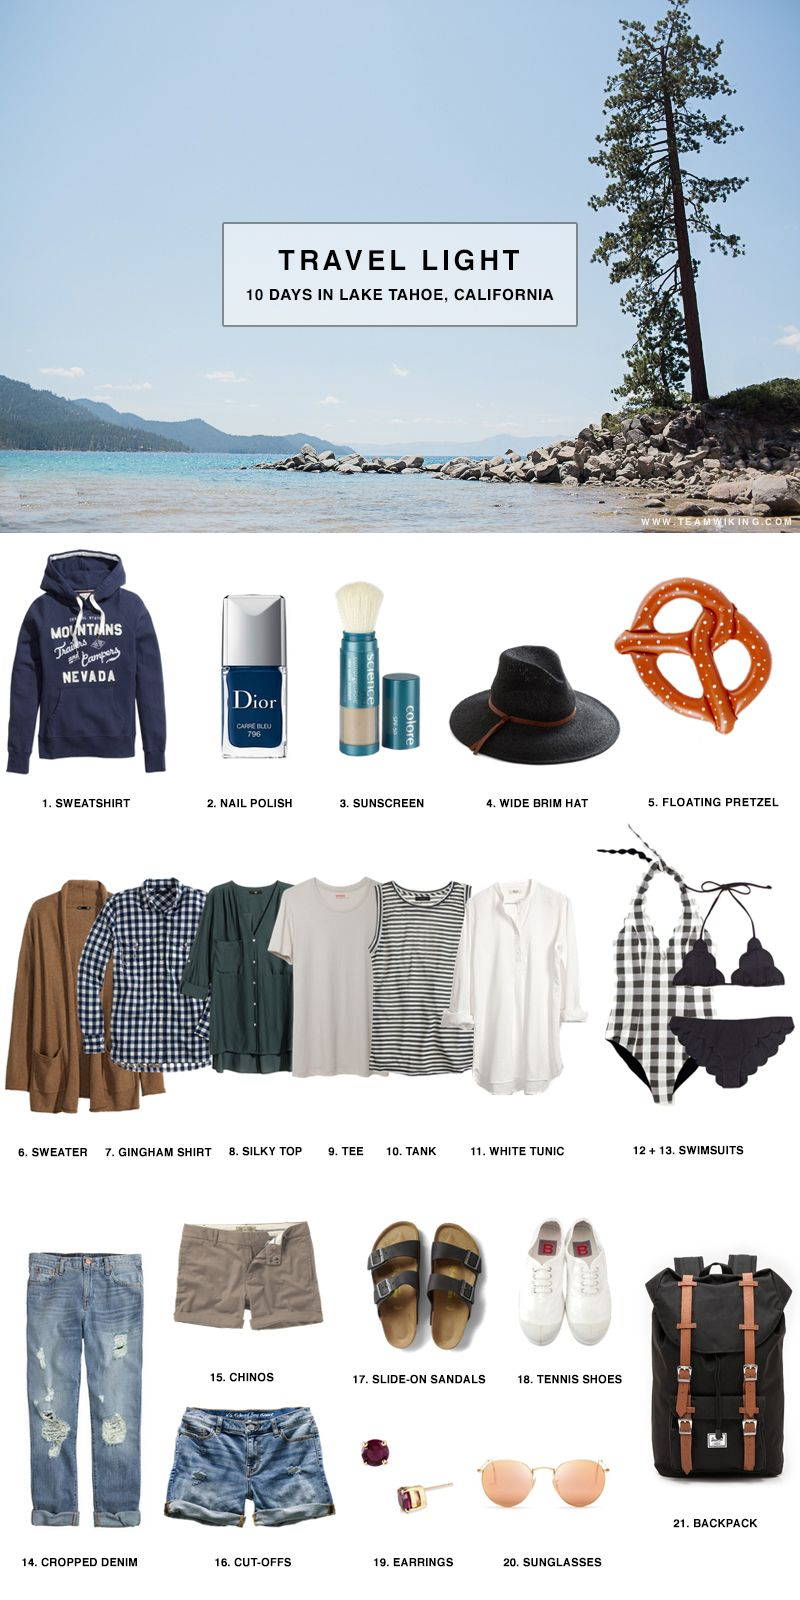 1. Mountains Sweatshirt / 2. Carre Bleu Nail Polish /3. Colorescience Mineral Sunscreen / 4. Wide Brim Hat / 5. Floating Pretzel / 6. Relaxed Cardigan / 7. Gingham Shirt / 8. Silk Top / 9. Neutral Tee / 10. Striped Tank / 11. White Tunic / 12. Gingham Swimsuit / 13. Scalloped Bikini(in navyRead More